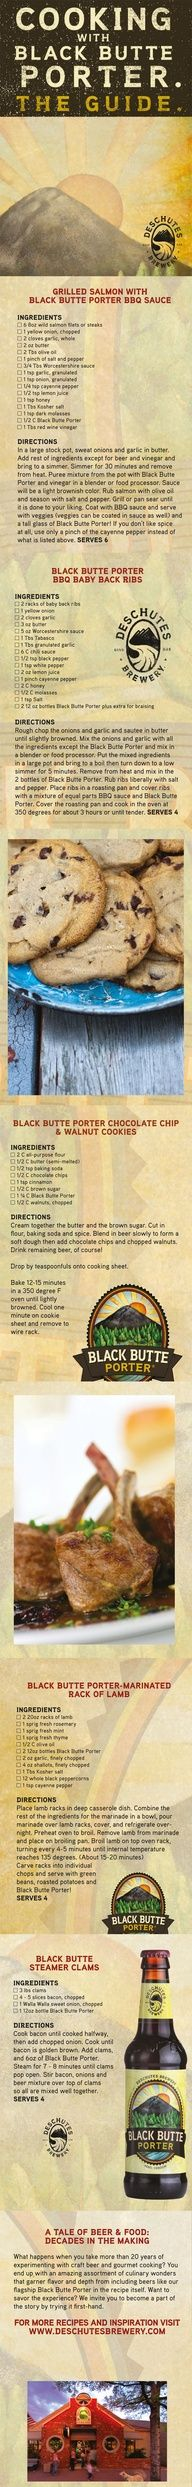 The Guide to Cooking with Black Butte Porter.